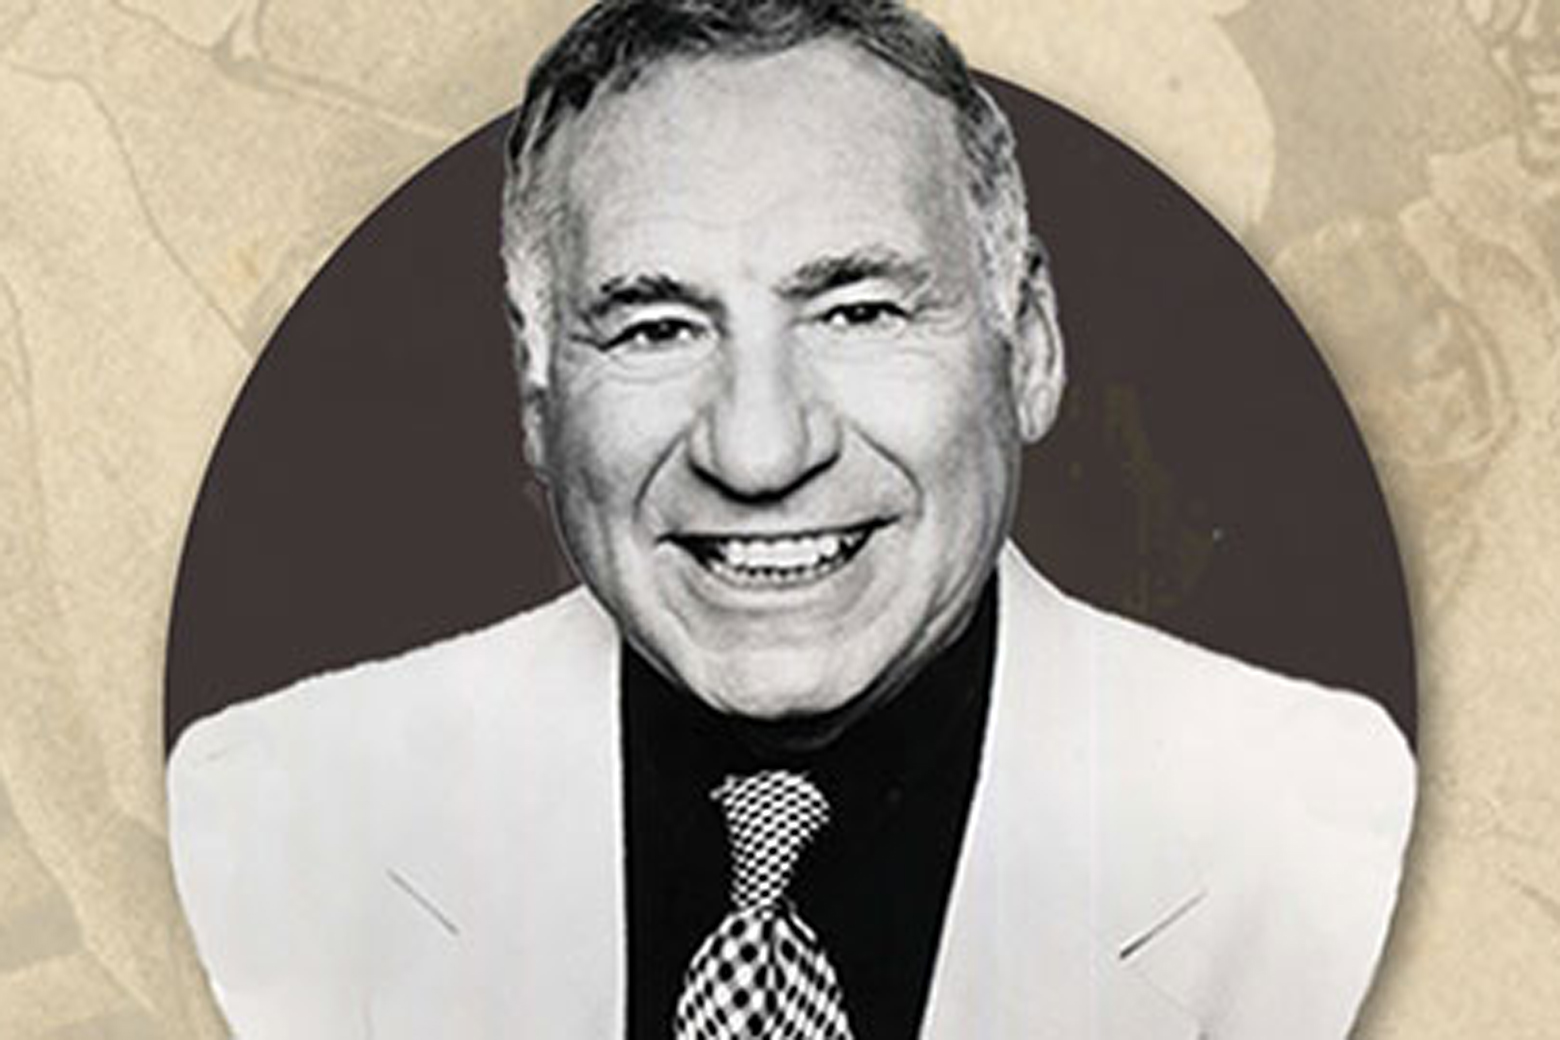 Top 10 of Mel Brooks as comedy legend hits Kennedy Center